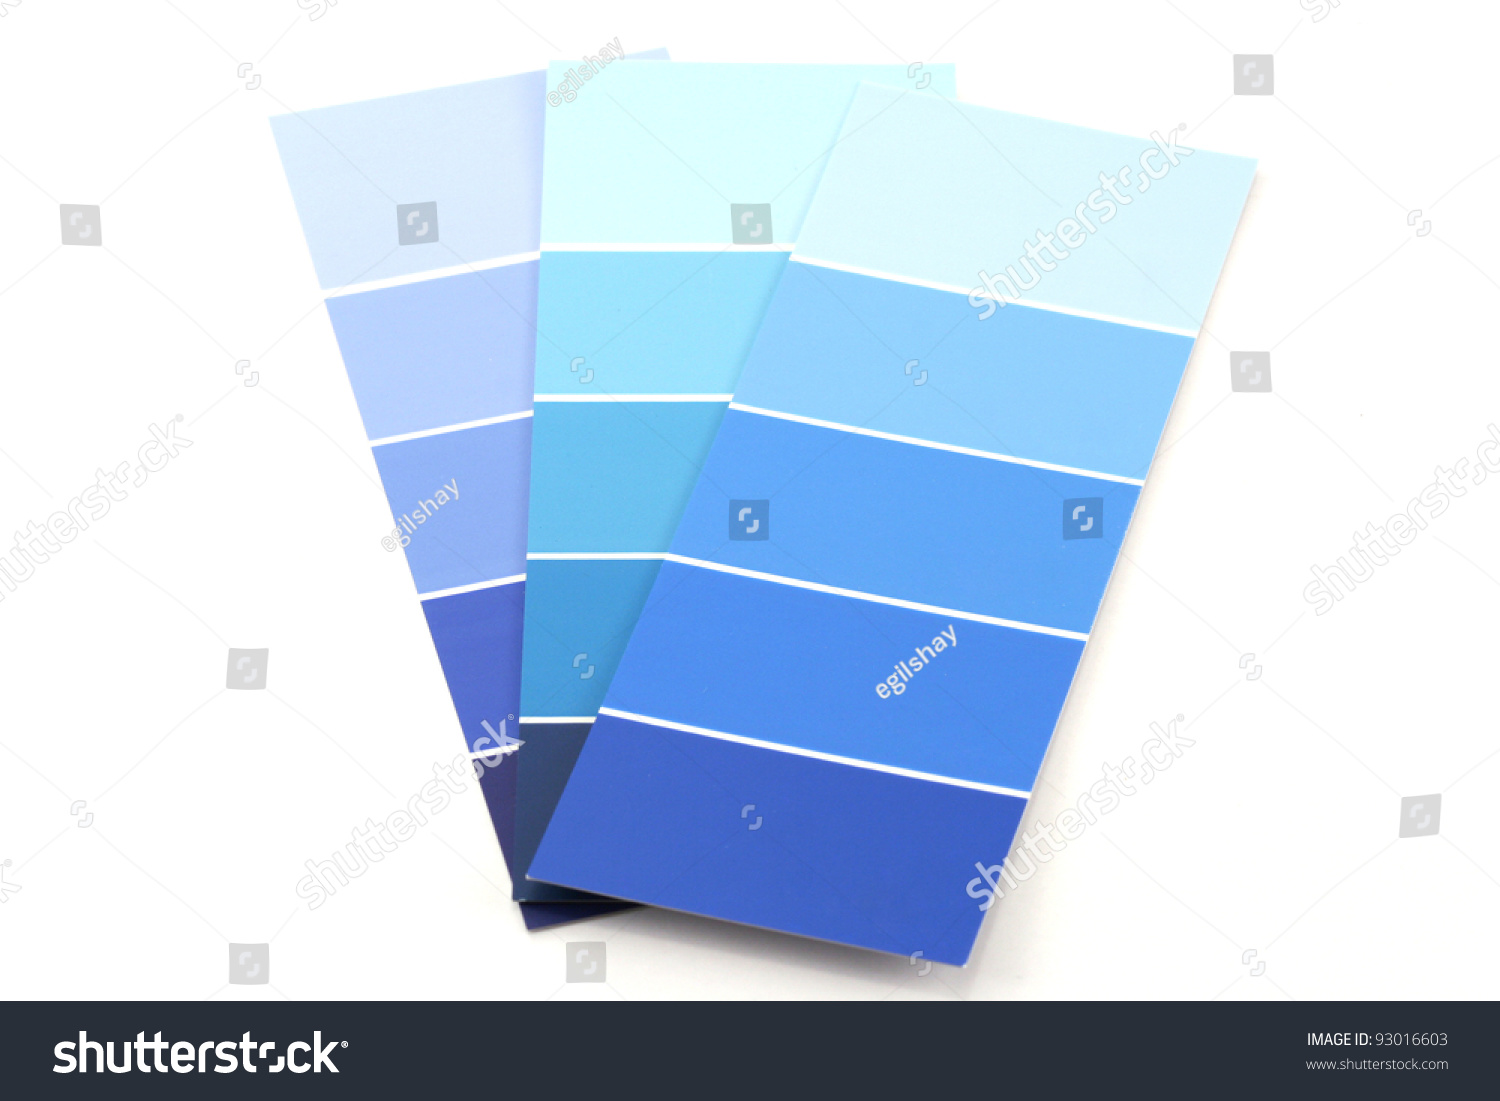 Shades Of Blue Paint Shades Blue Paint Swatches Stock Photo 93016603  Shutterstock